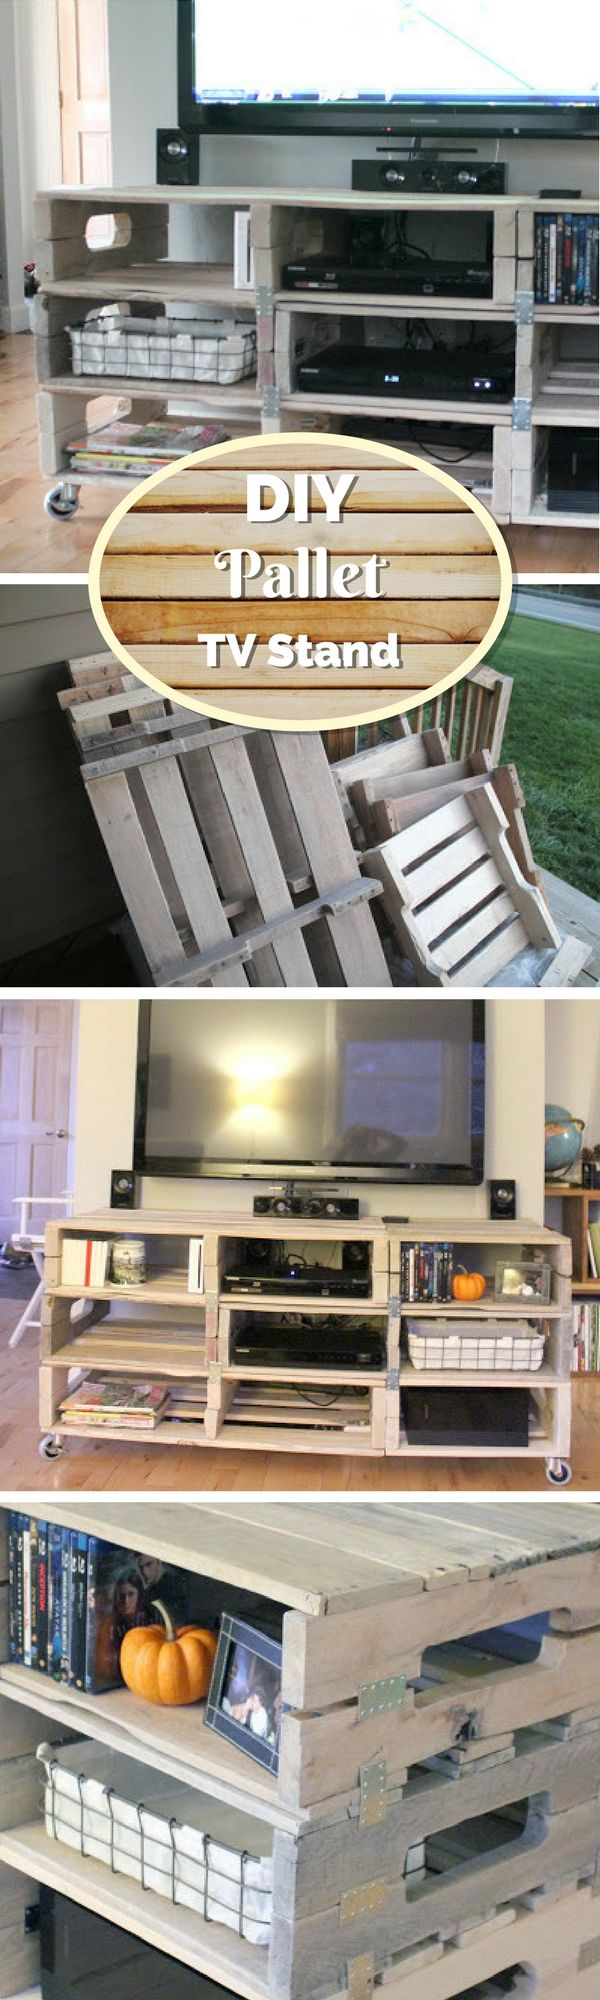 Check out how to build a DIY media console from pallets @istandarddesign